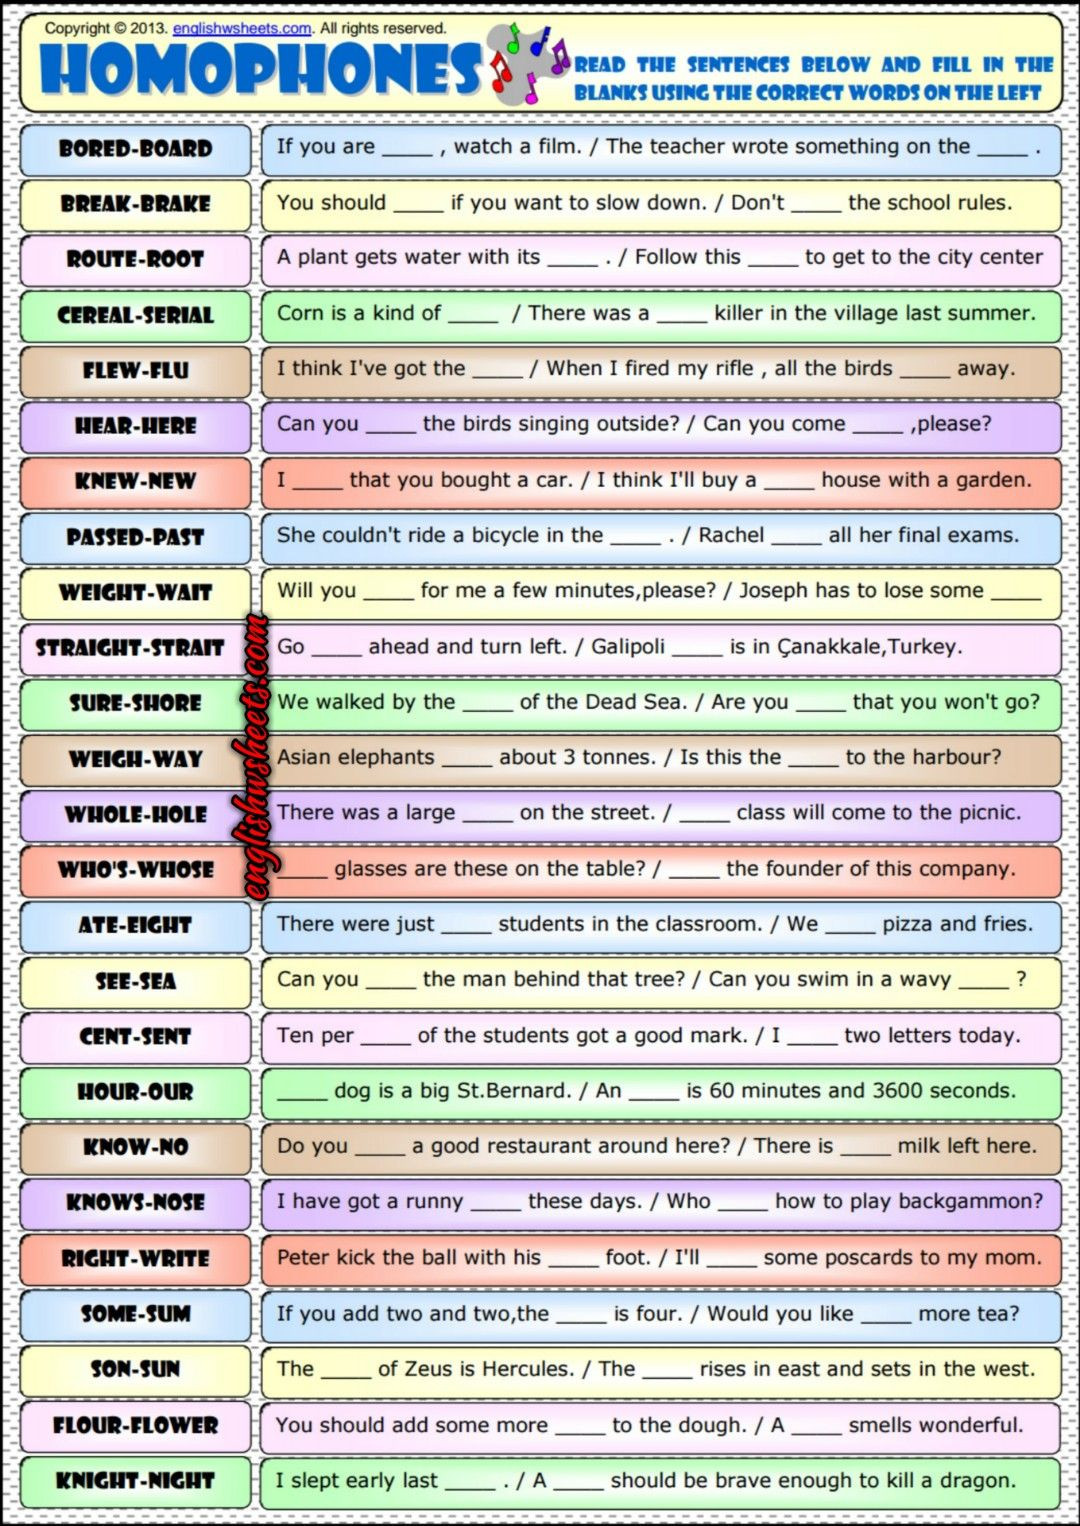 Free Printable Homophone Worksheets Homophones Phonetics Esl Exercises Worksheet